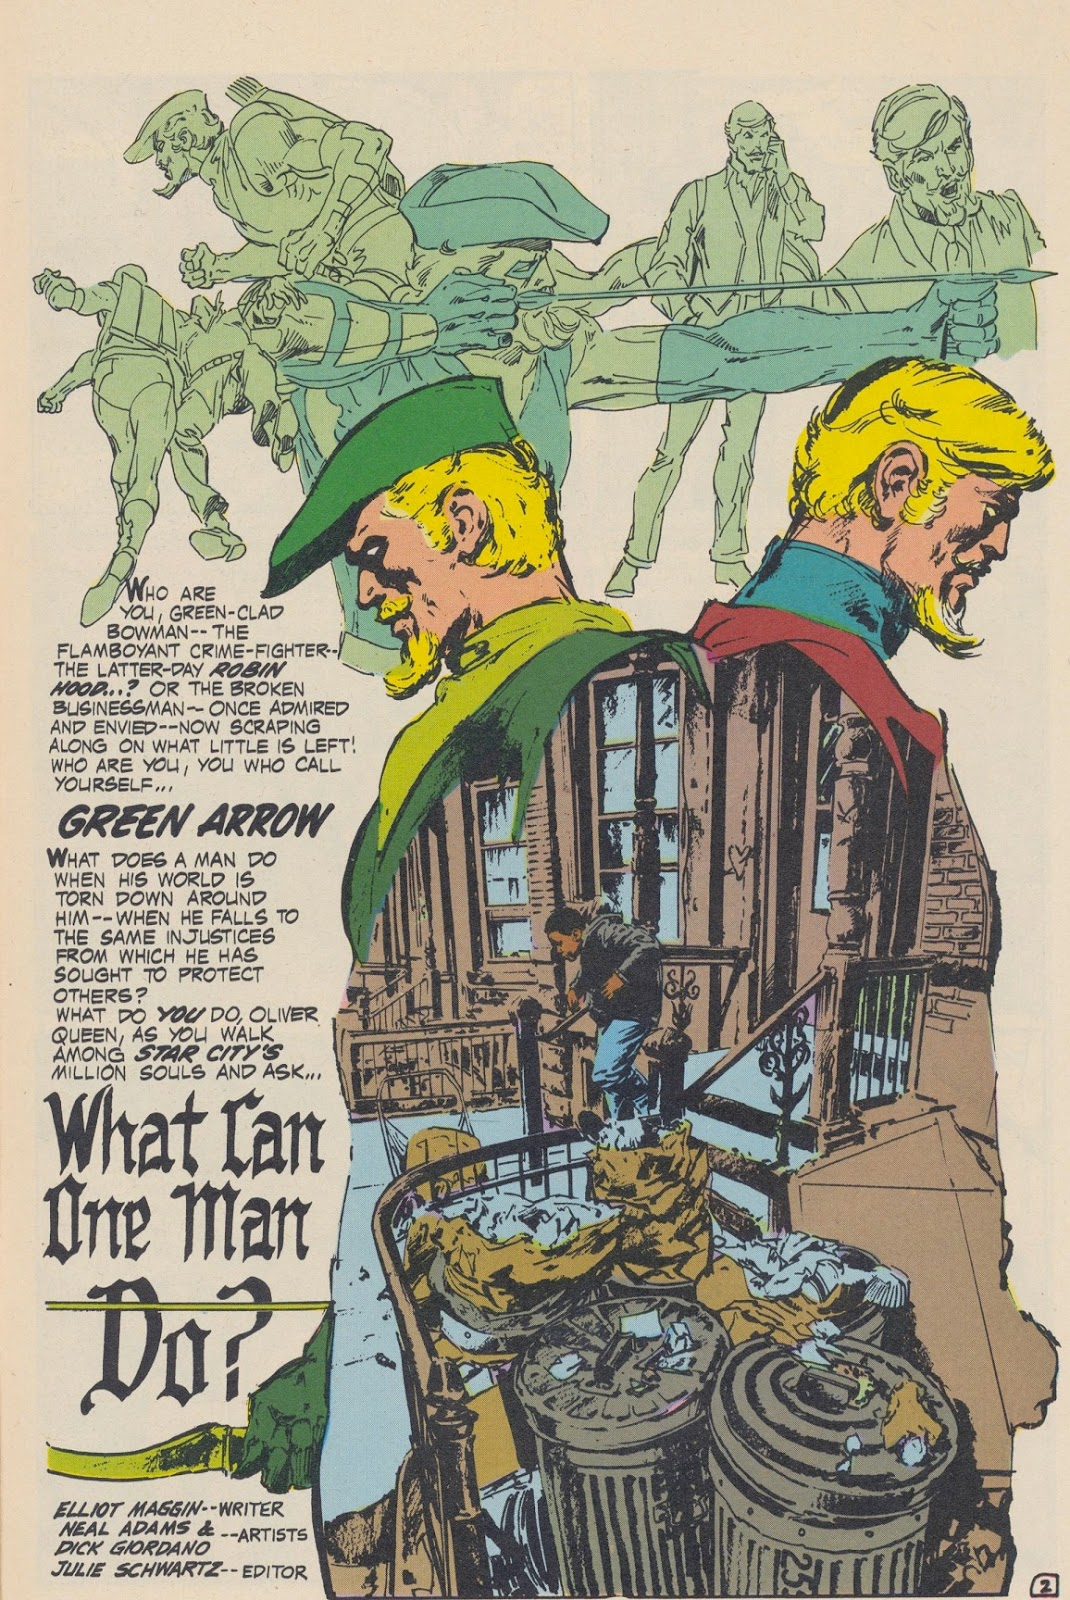 TALES FROM THE KRYPTONIAN: When You Least Expect It : Neal